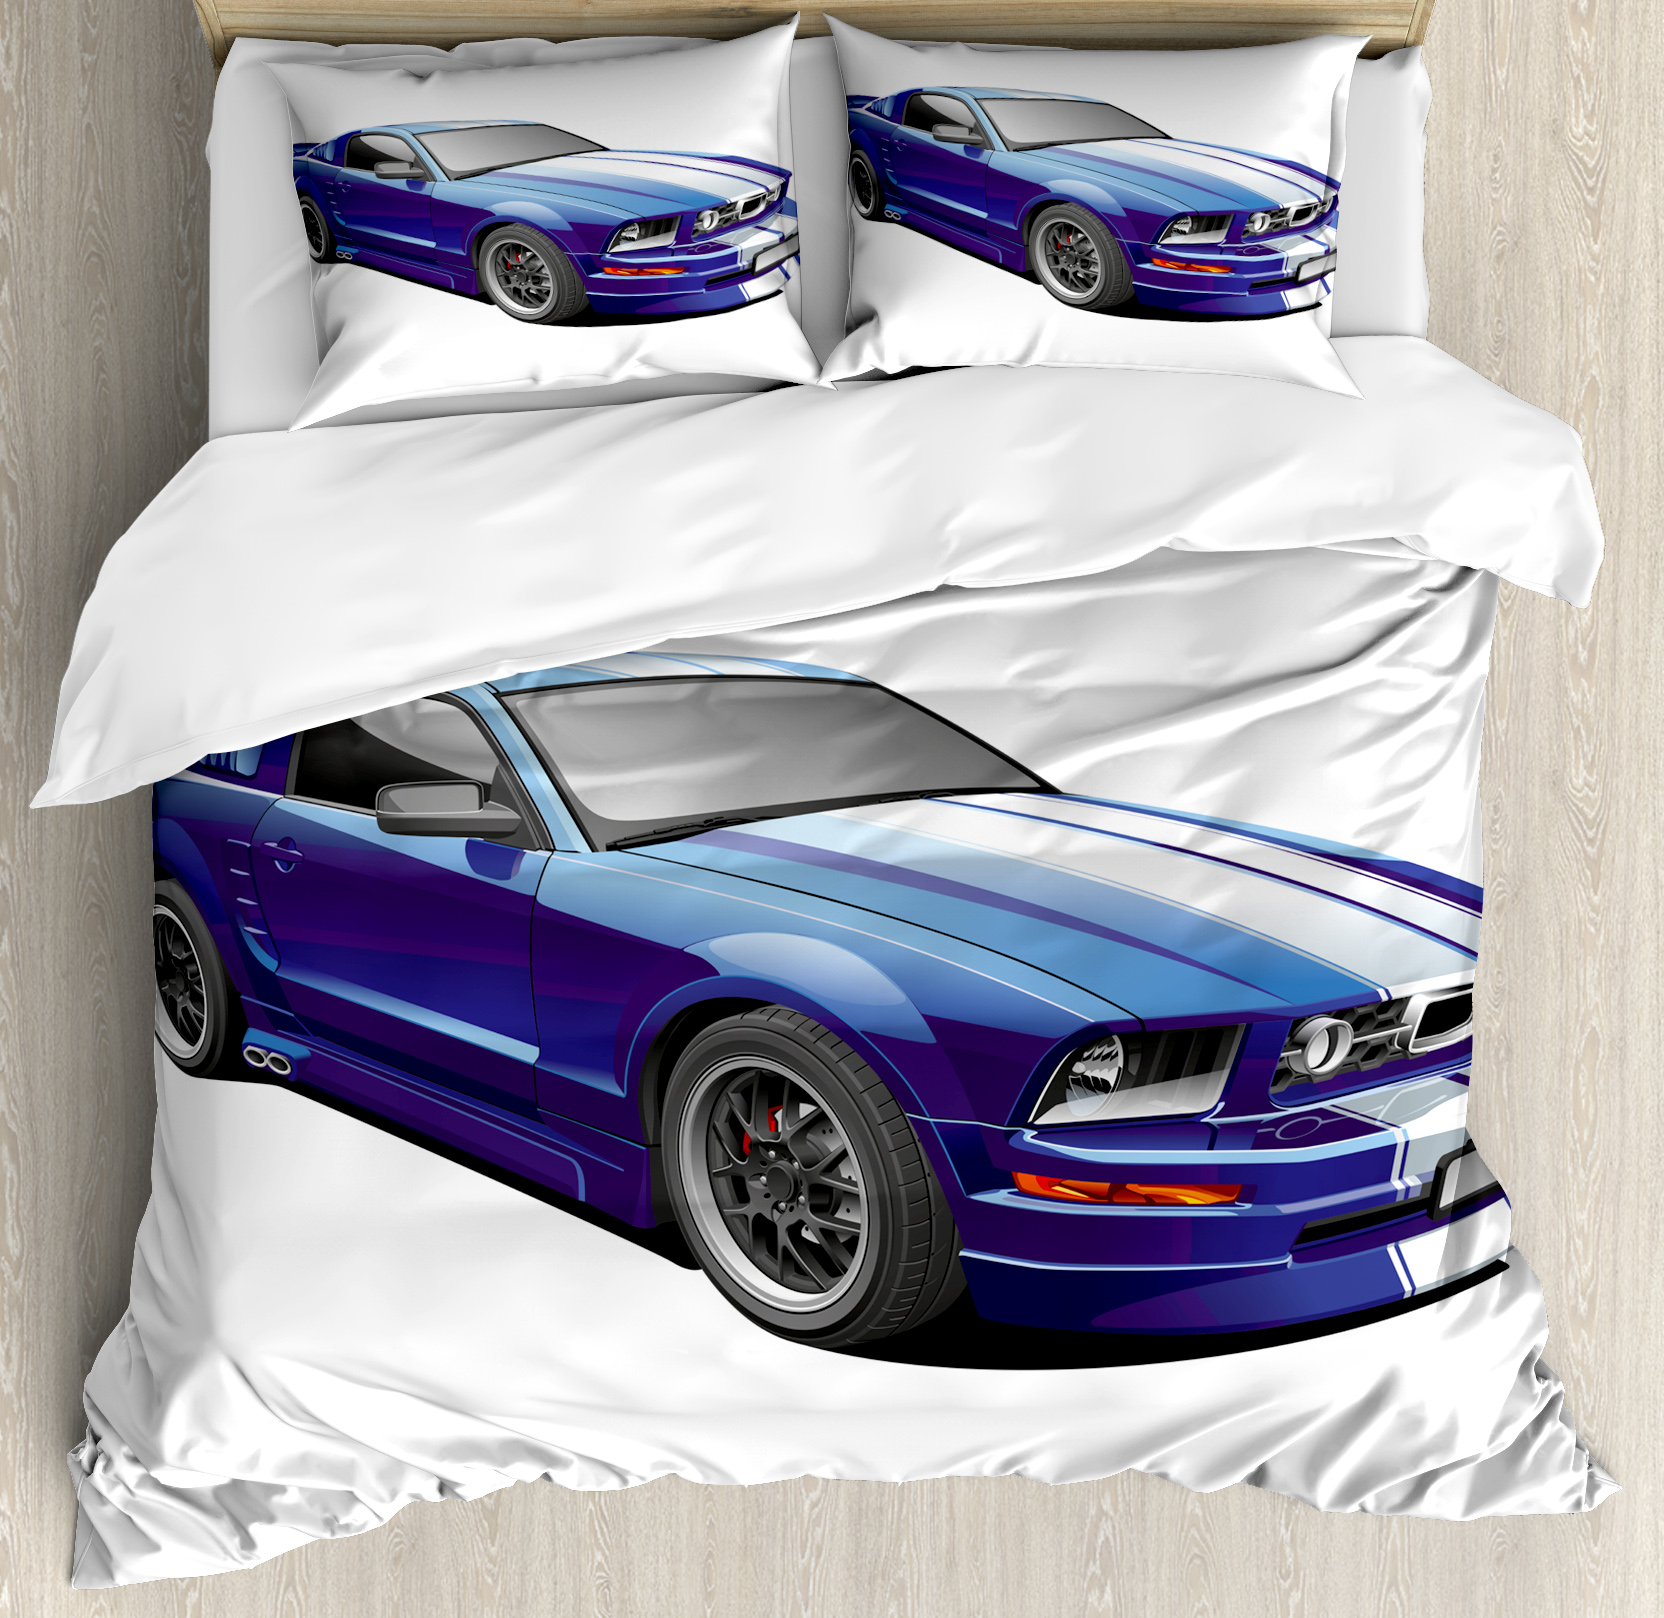 Teen Room Decor Queen Size Duvet Cover Set, American Auto Racing Car Sports Competition... by Kozmos